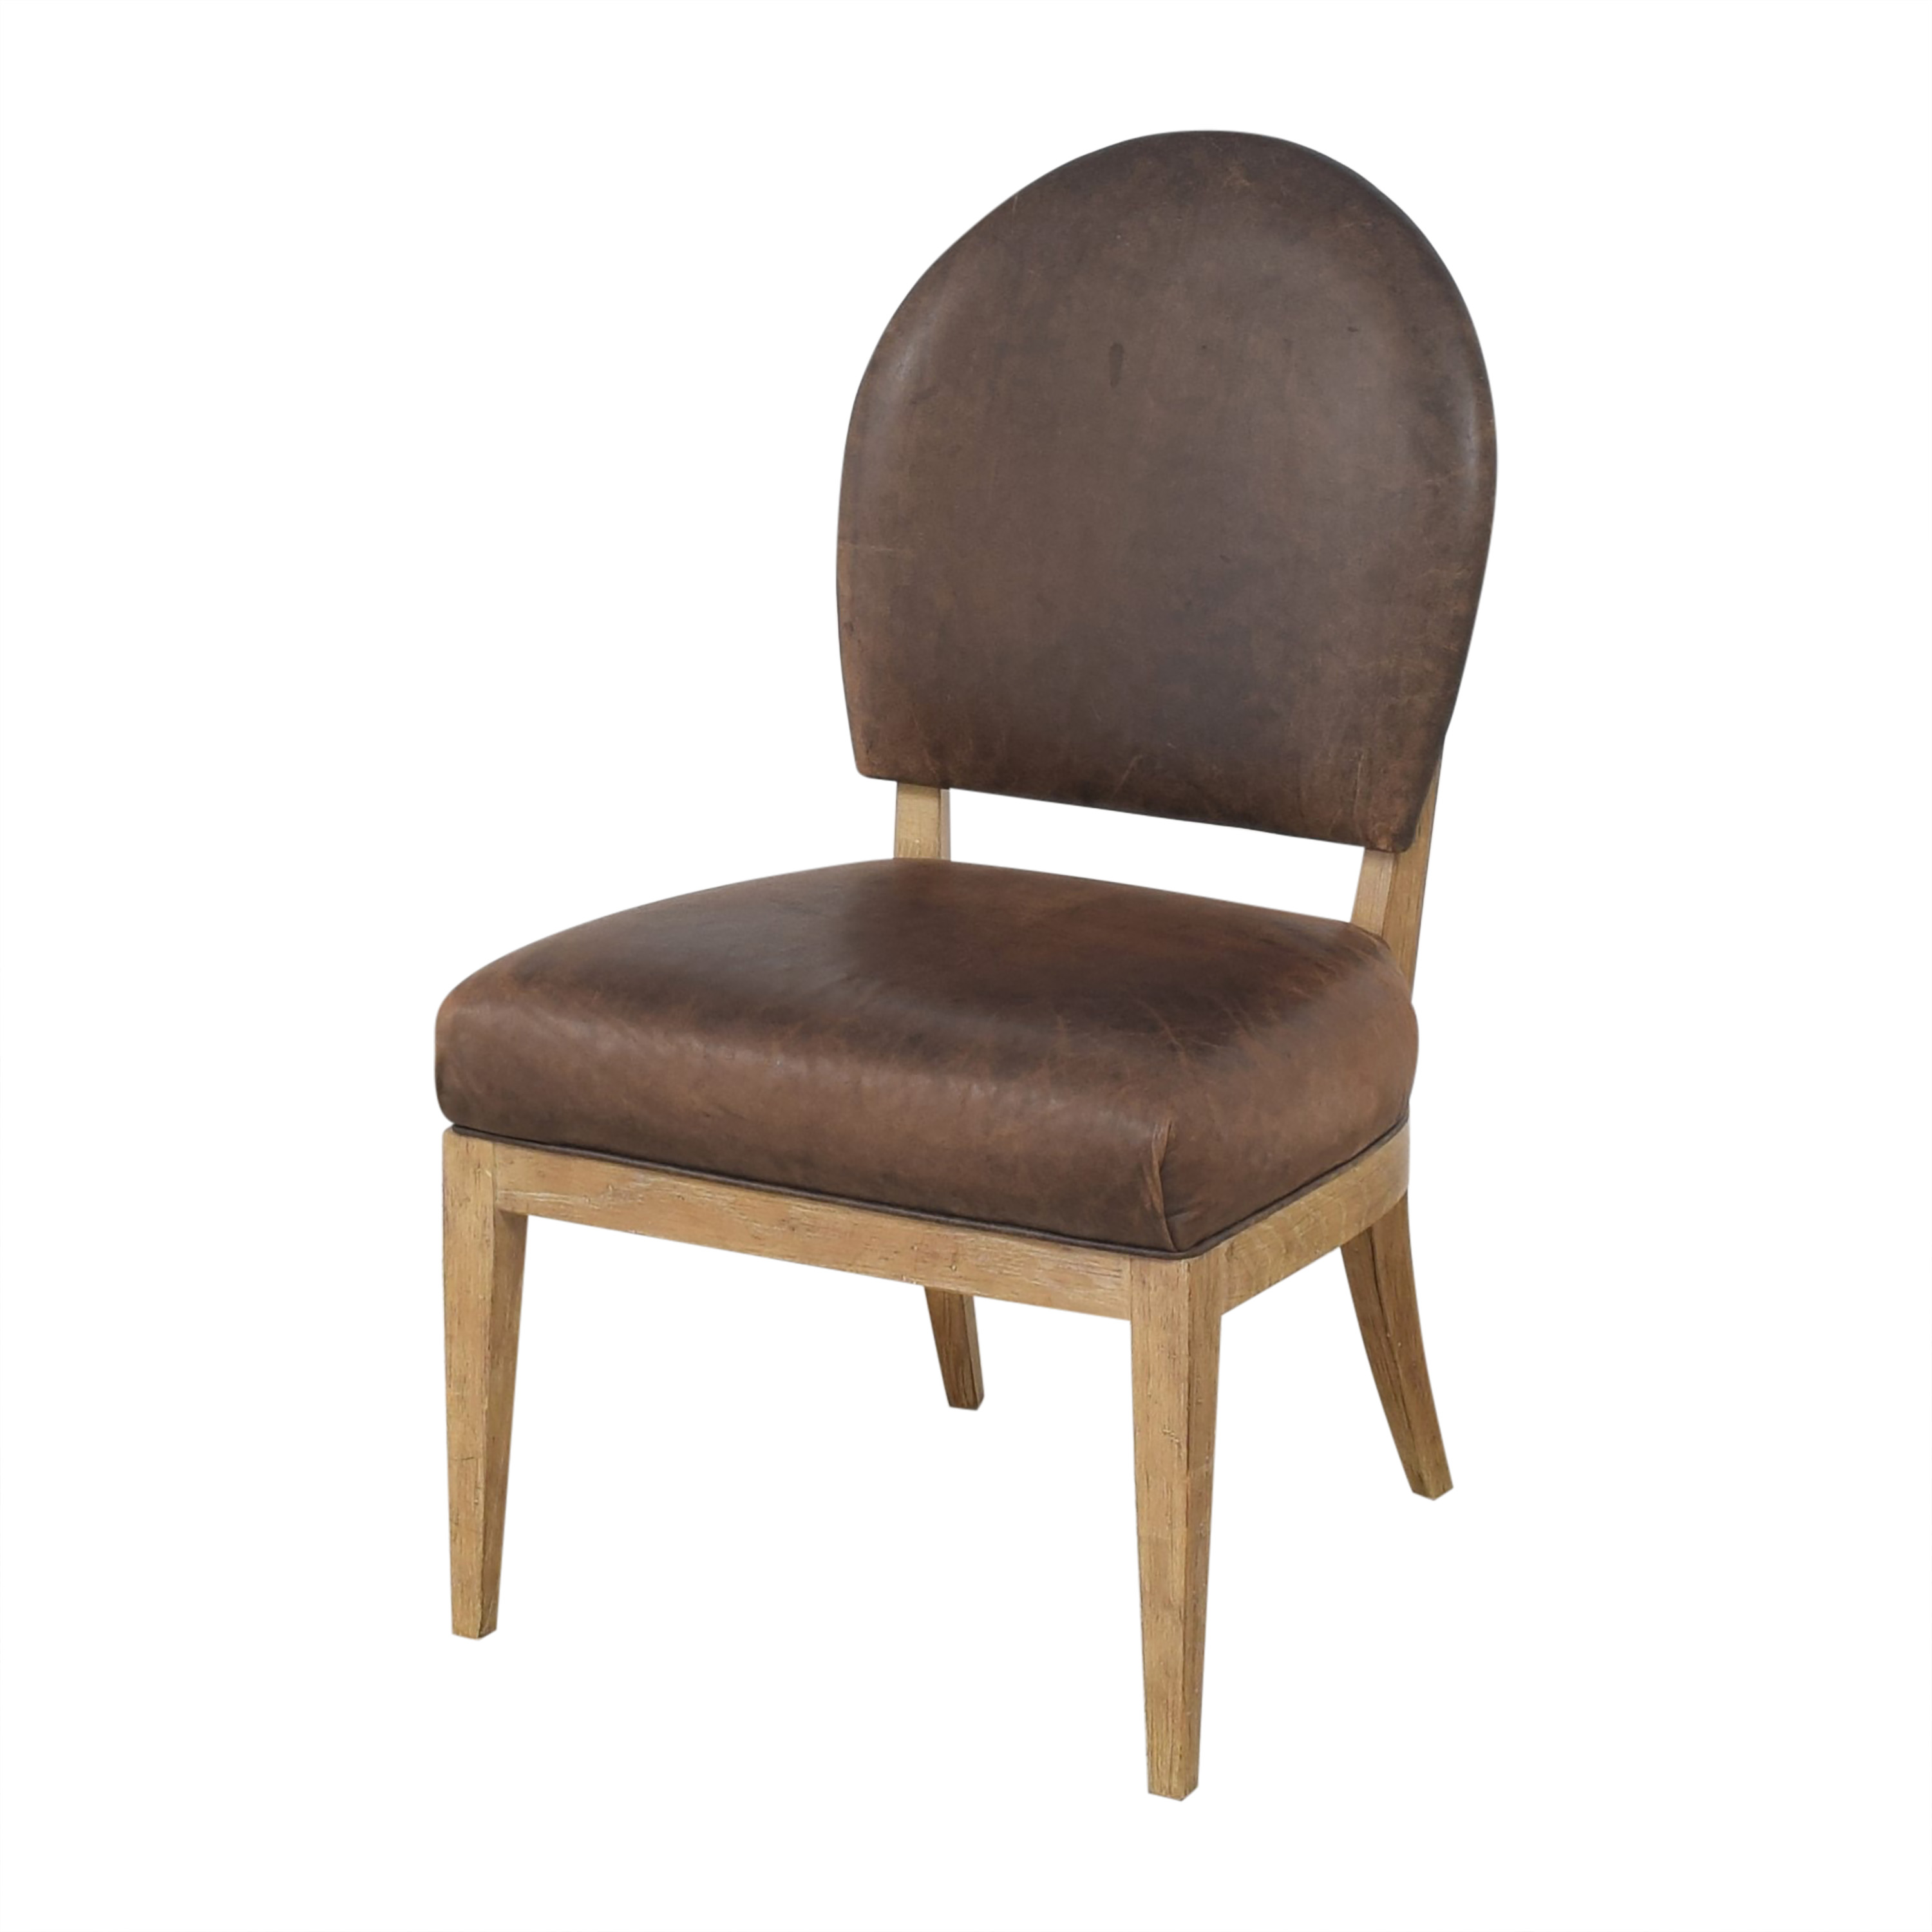 Hickory White Hickory White Upholstered Dining Chairs on sale